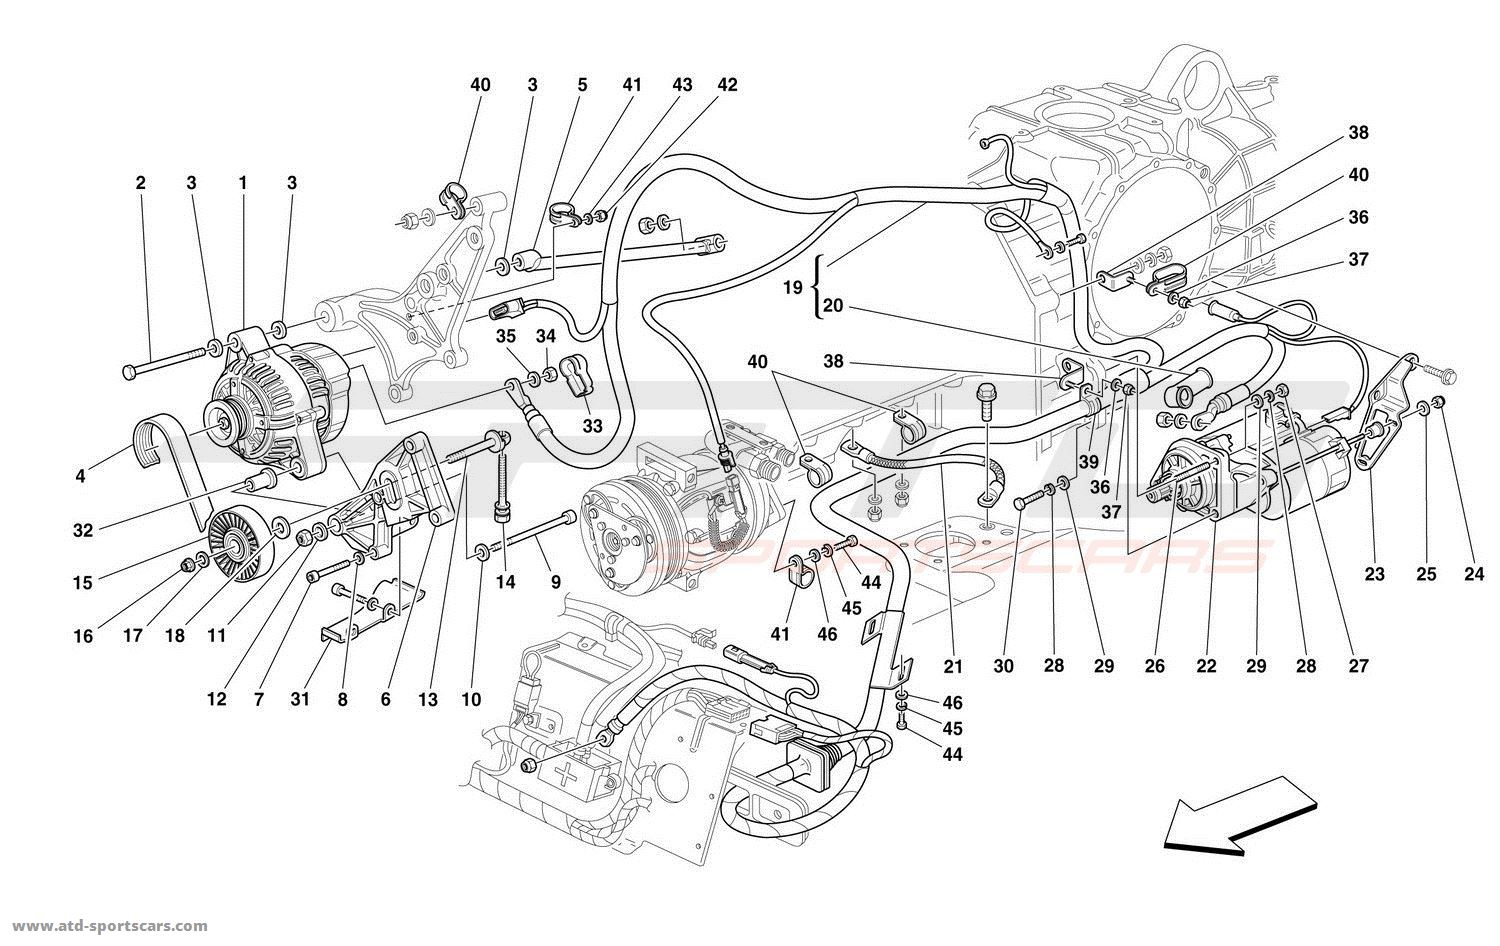 Ferrari 360 Spider Electrical Diagram • Wiring Diagram For